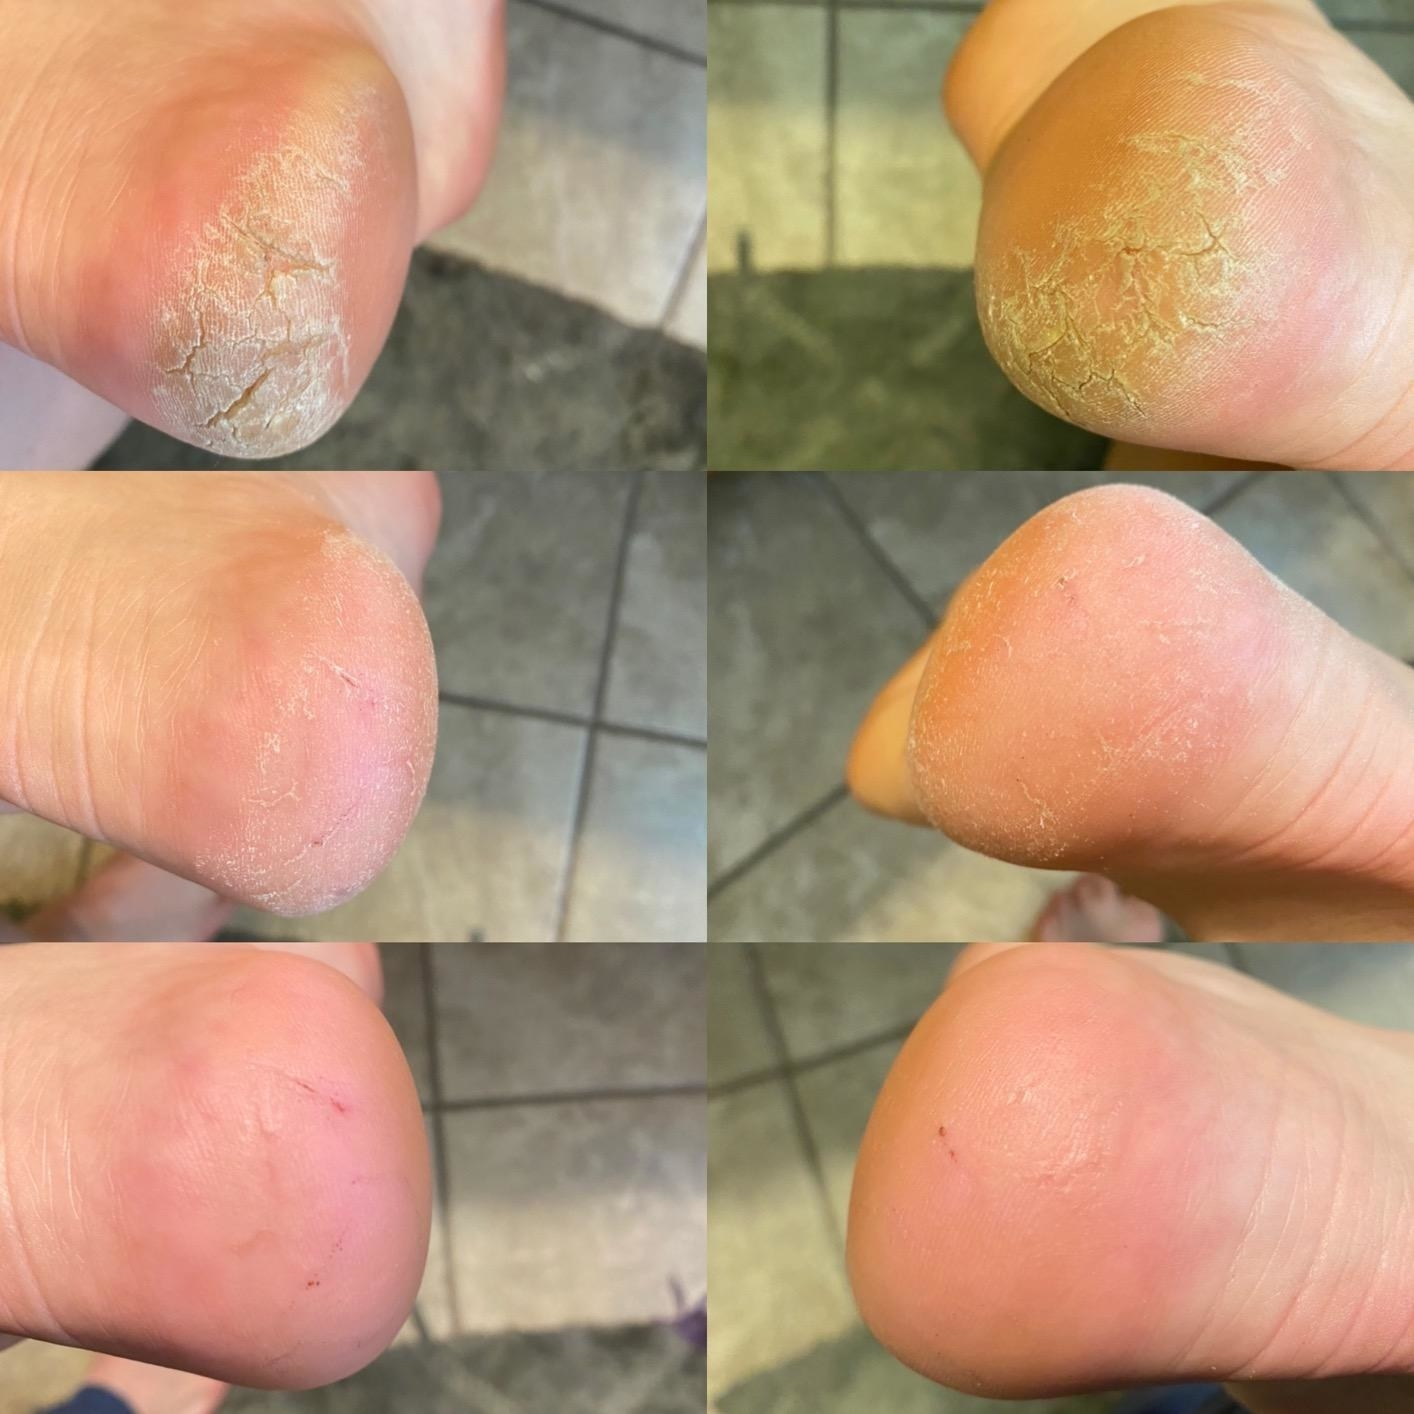 a reviewer photo of both feet before, immediately after, and the morning after using the callus remover